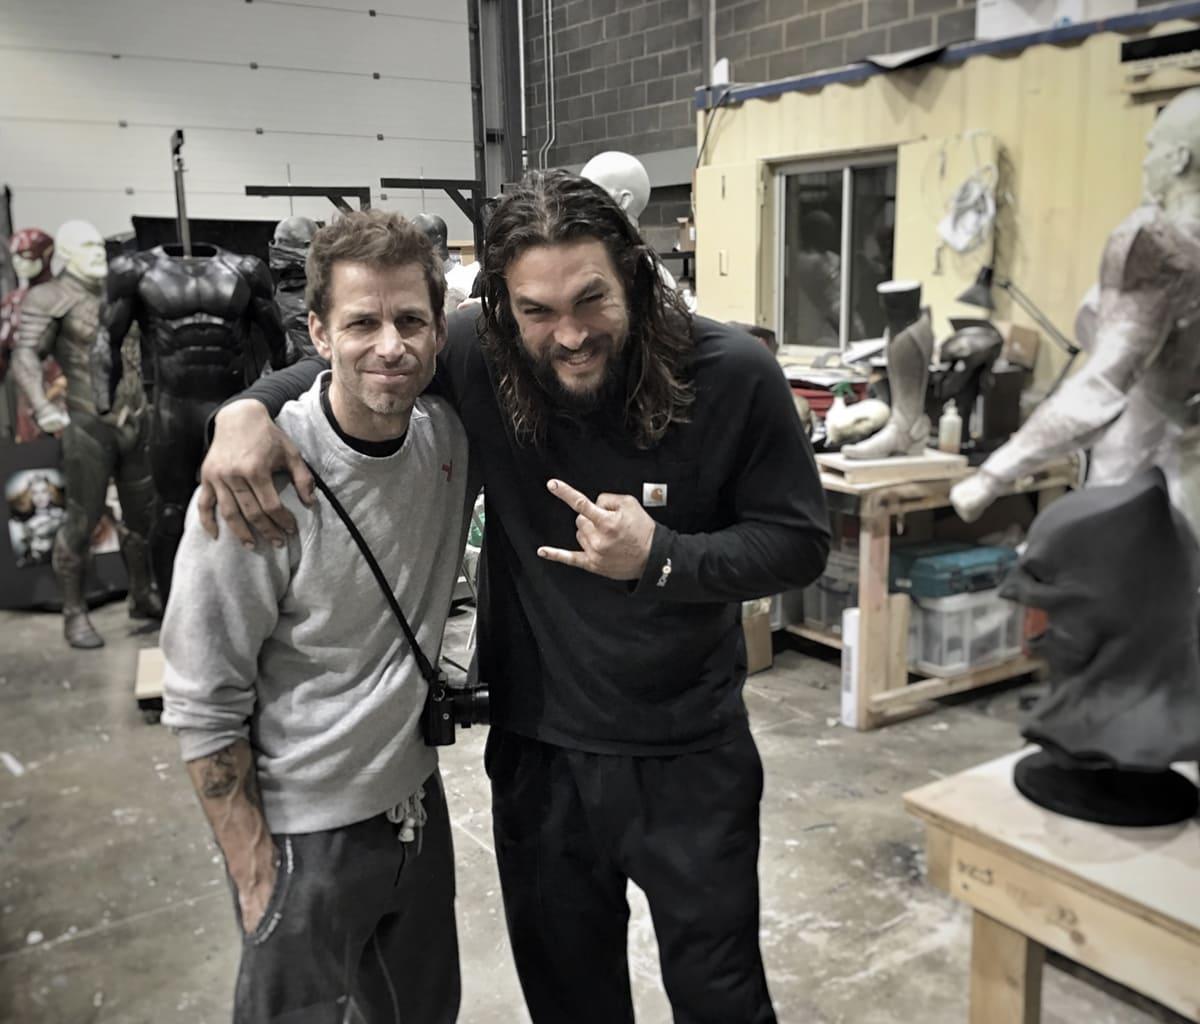 Jason Momoa and director Zack Snyder on the set of the 2017 American superhero film Justice League